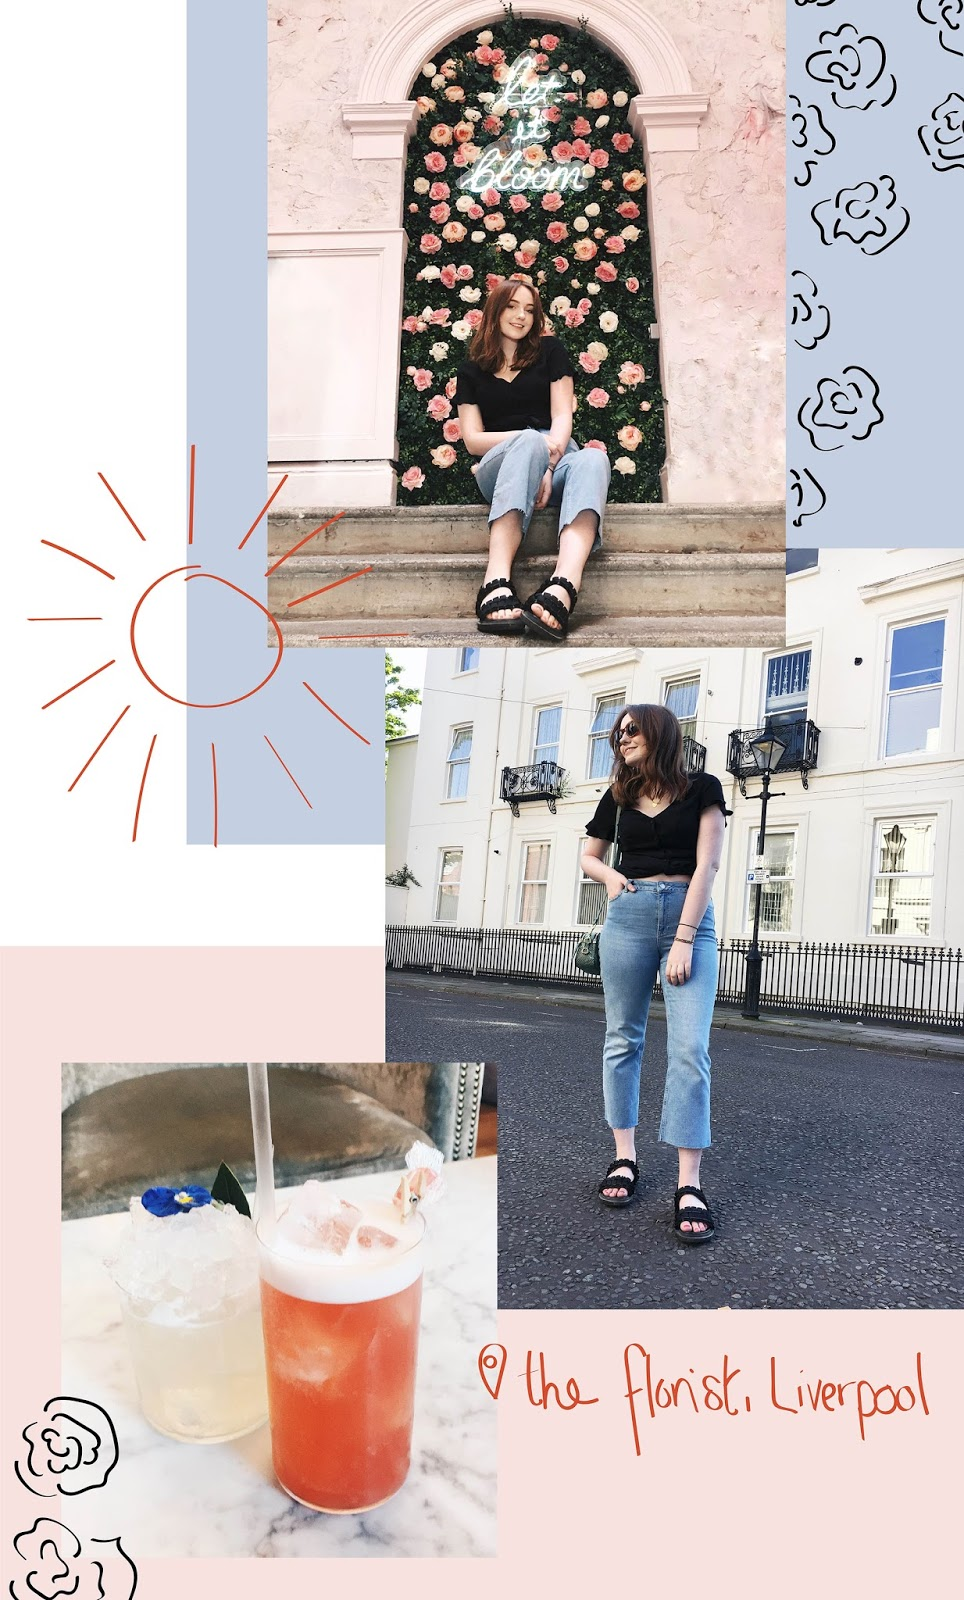 liverpool style blogger wearing asos summer outfit at the florist liverpool, collage